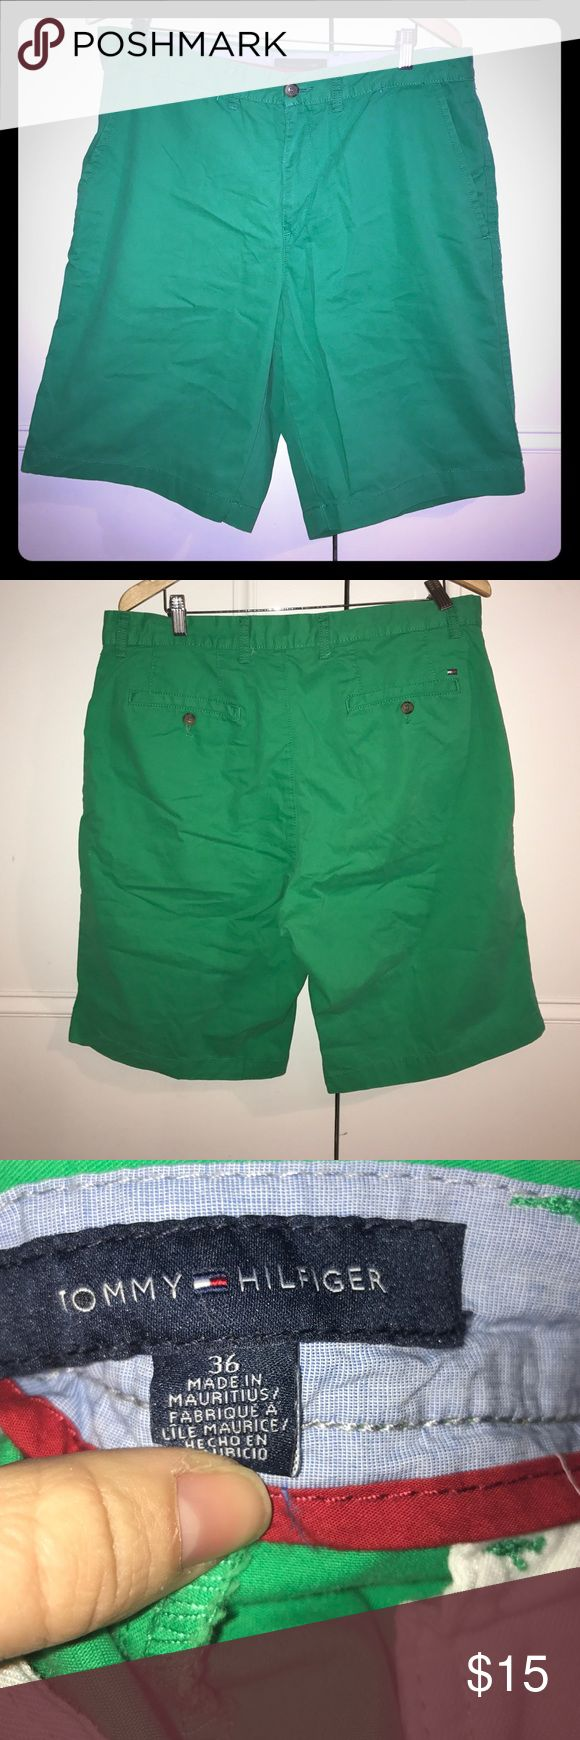 Tommy Hilfiger green chino shorts Tommy Hilfiger green chino shorts Tommy Hilfiger Shorts Flat Front